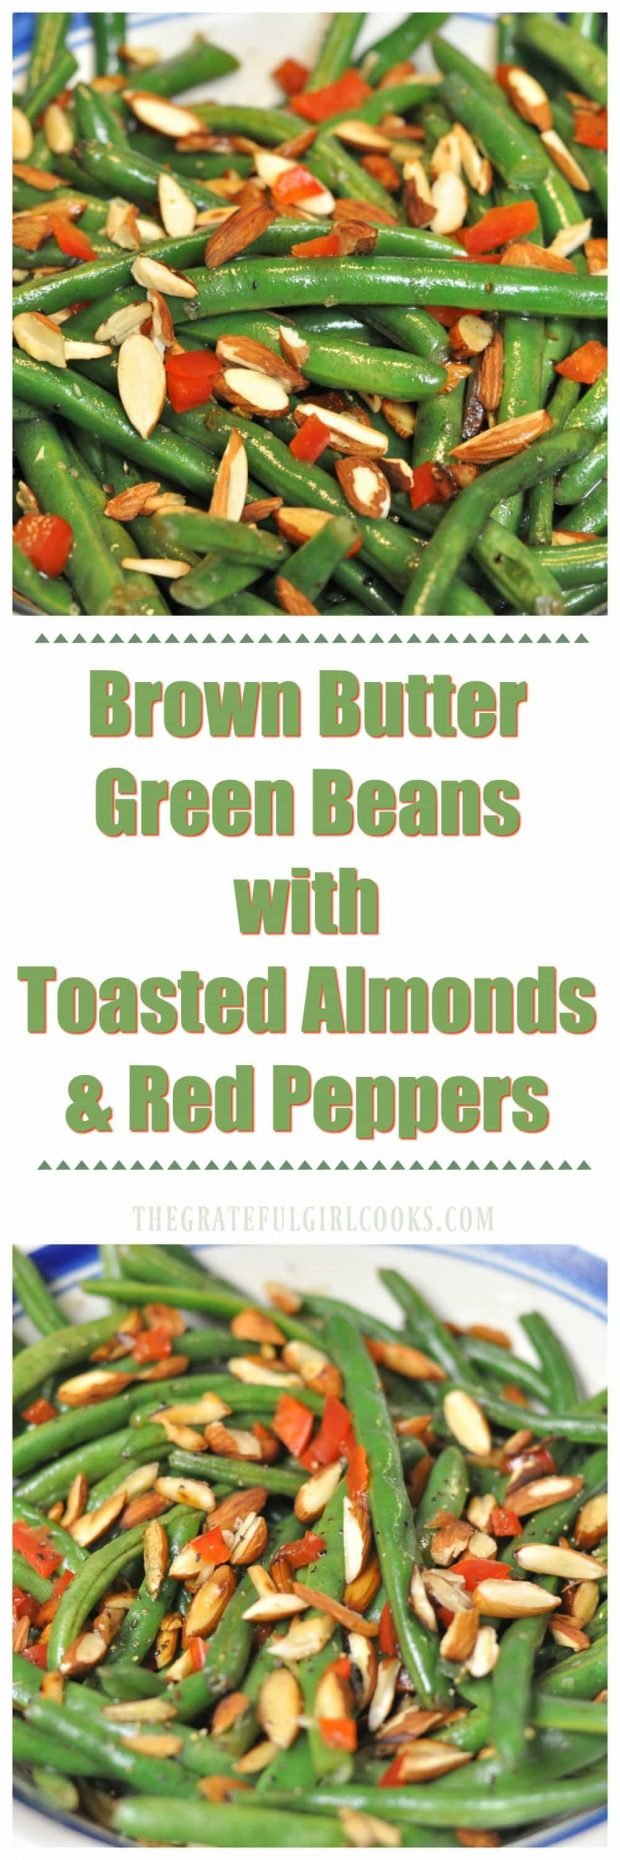 Brown Butter Green Beans with Toasted Almonds & Red Peppers / The Grateful Girl Cooks! Festive looking vegetable side dish featuring fresh green beans cooked in browned butter, with toasted almonds and red bell peppers!oks!